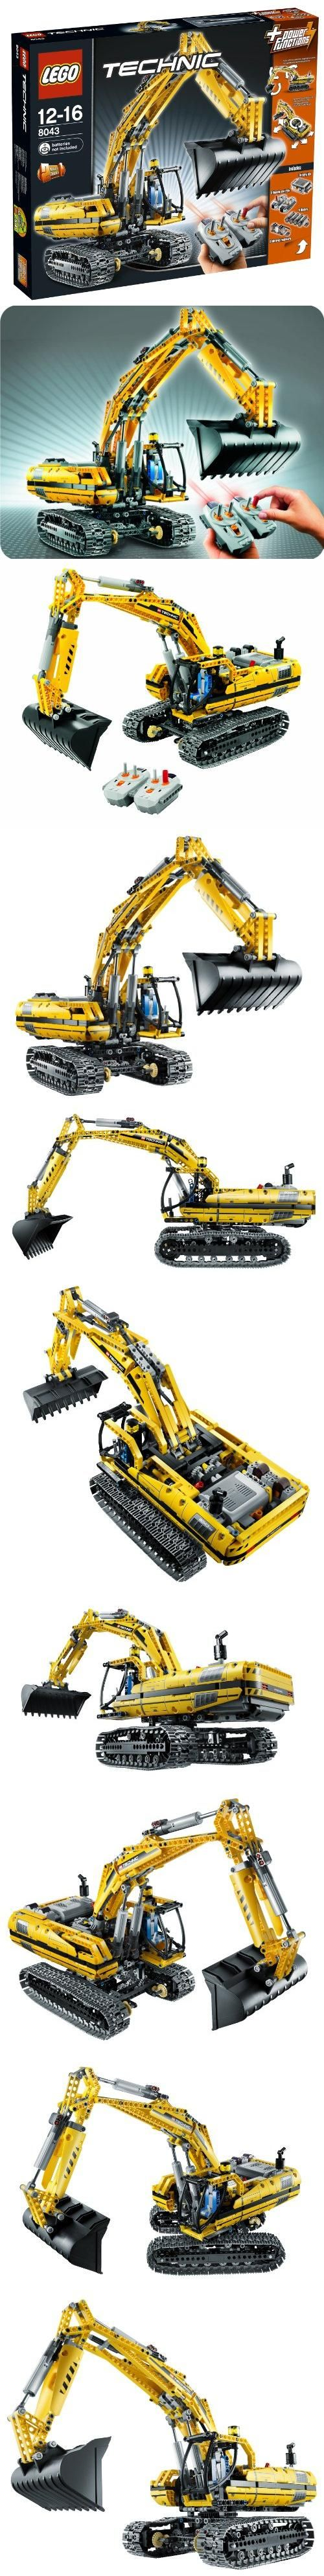 LEGO Technic 8043 - Motorized Excavator Power Functions, Real Lego shovel model car, #Toys, #Building Sets